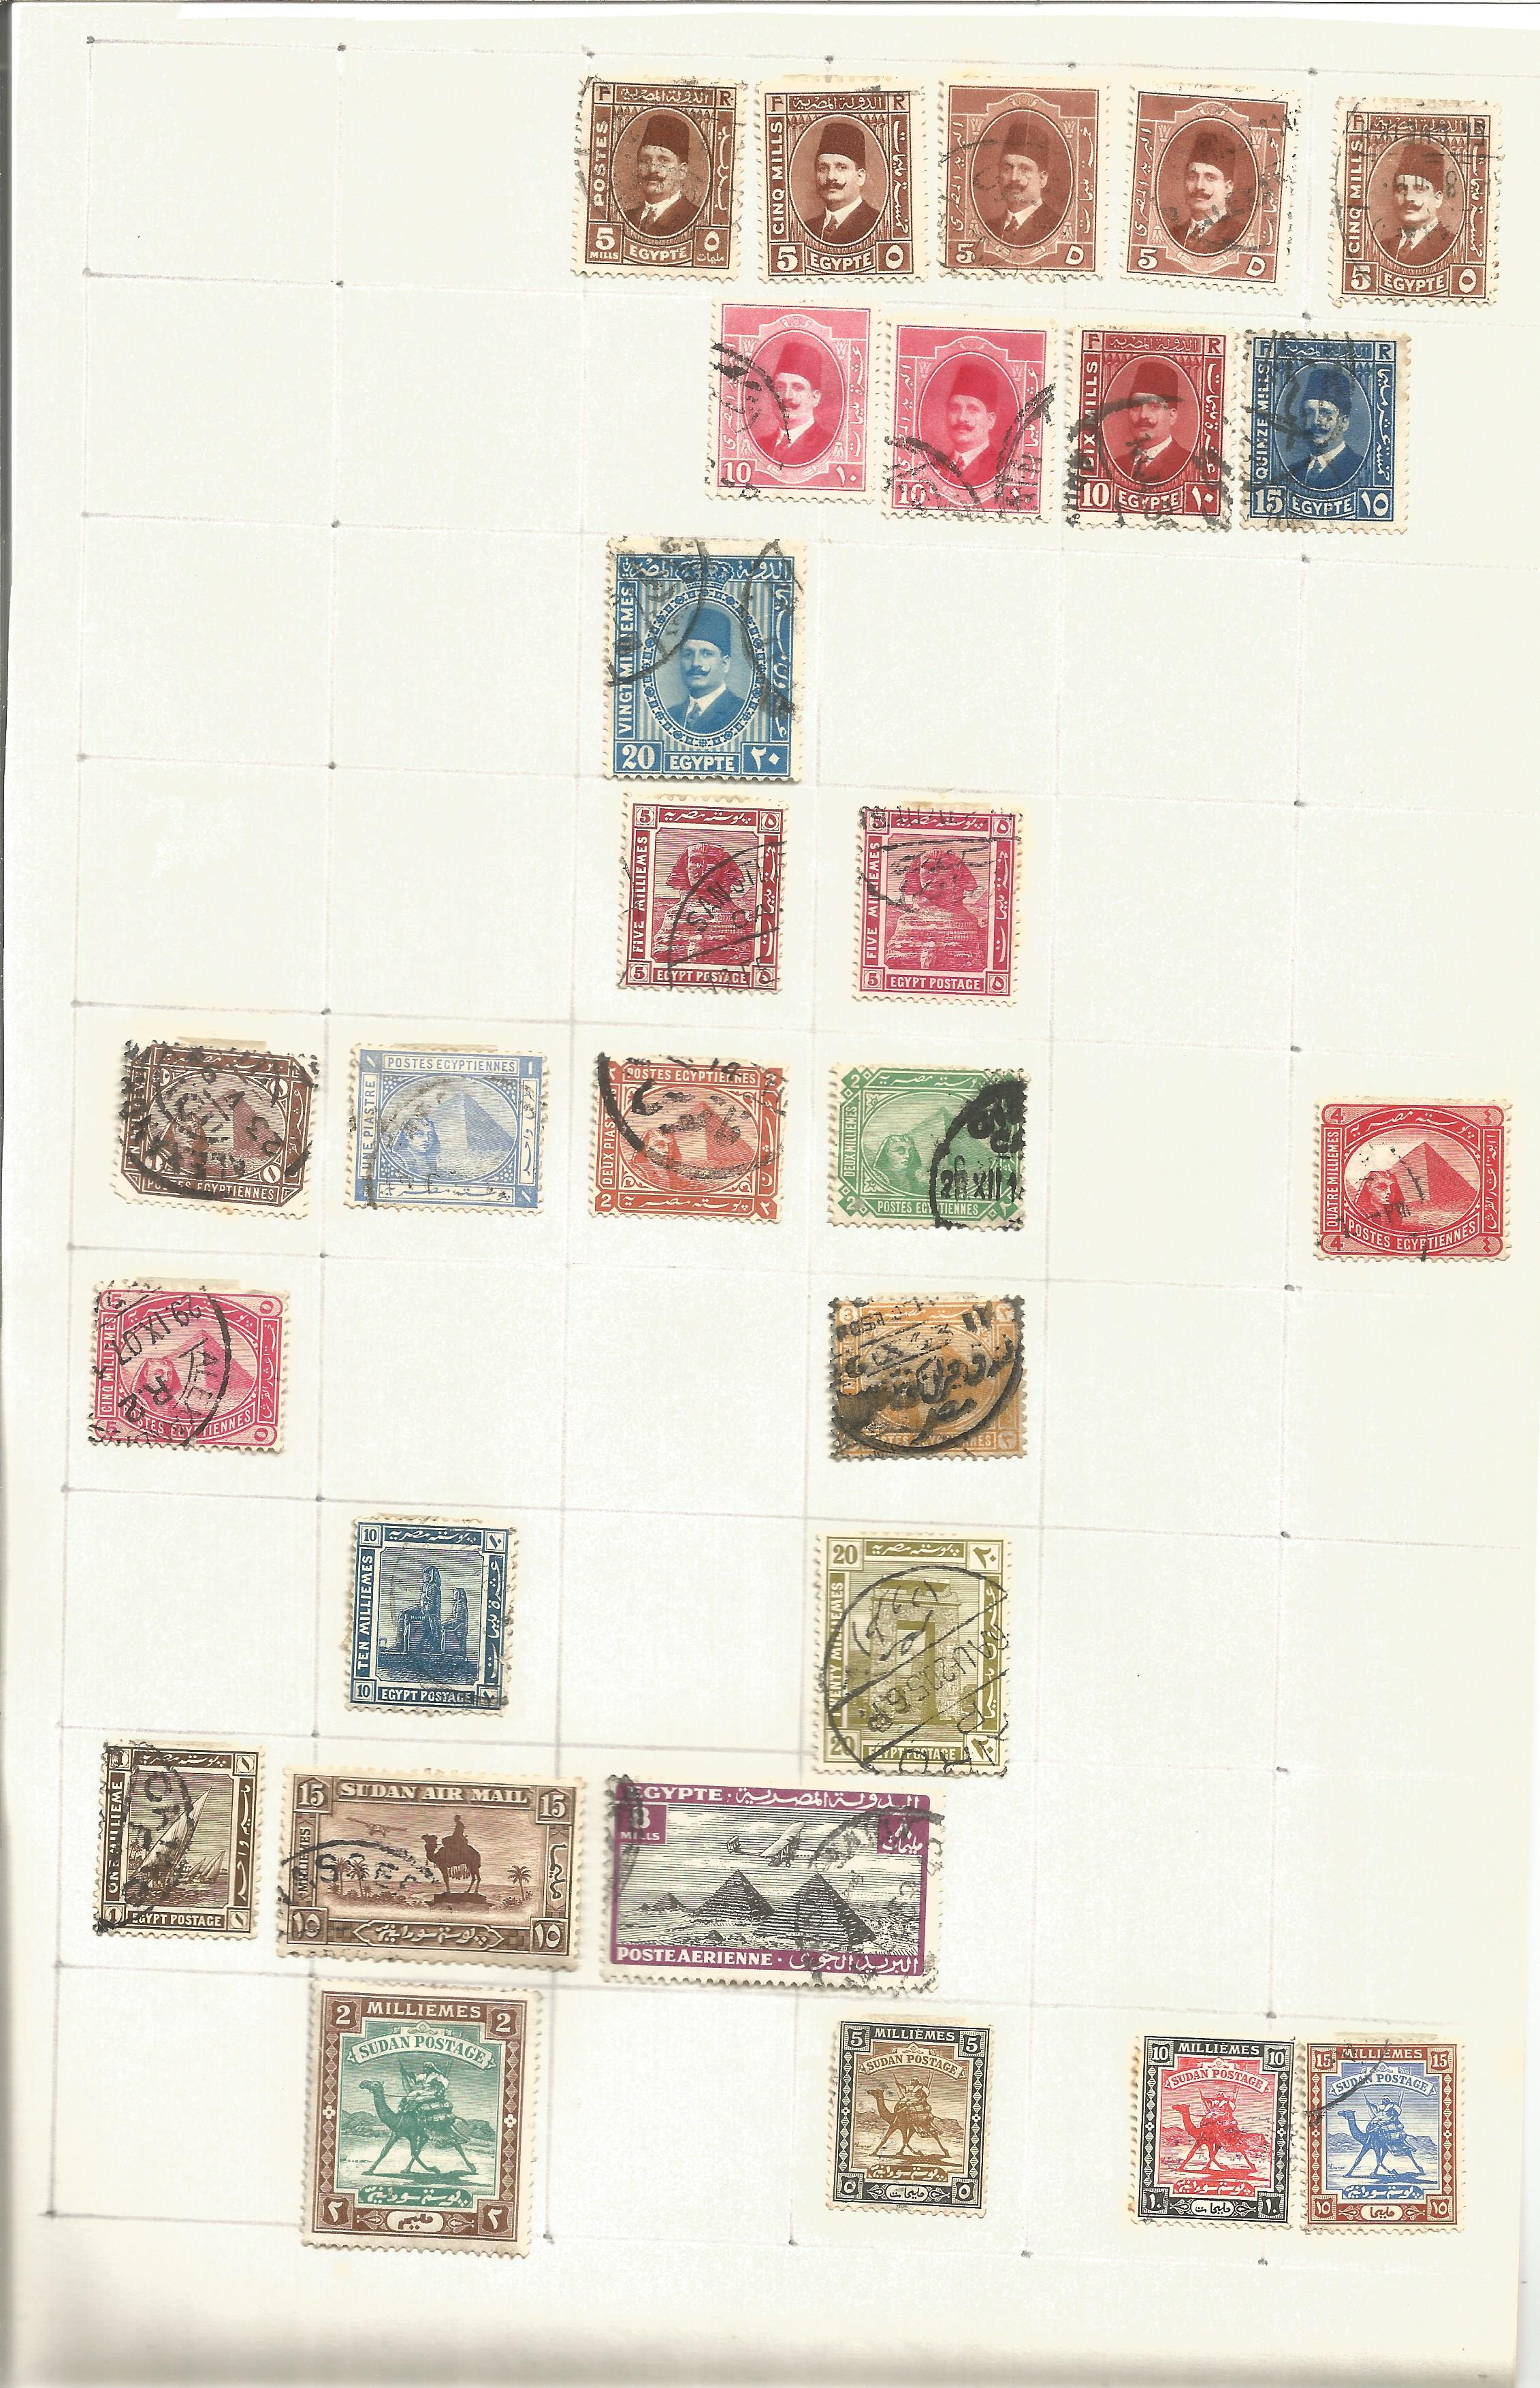 Egypt stamp collection on 3 loose pages. Good condition. We combine postage on multiple winning lots